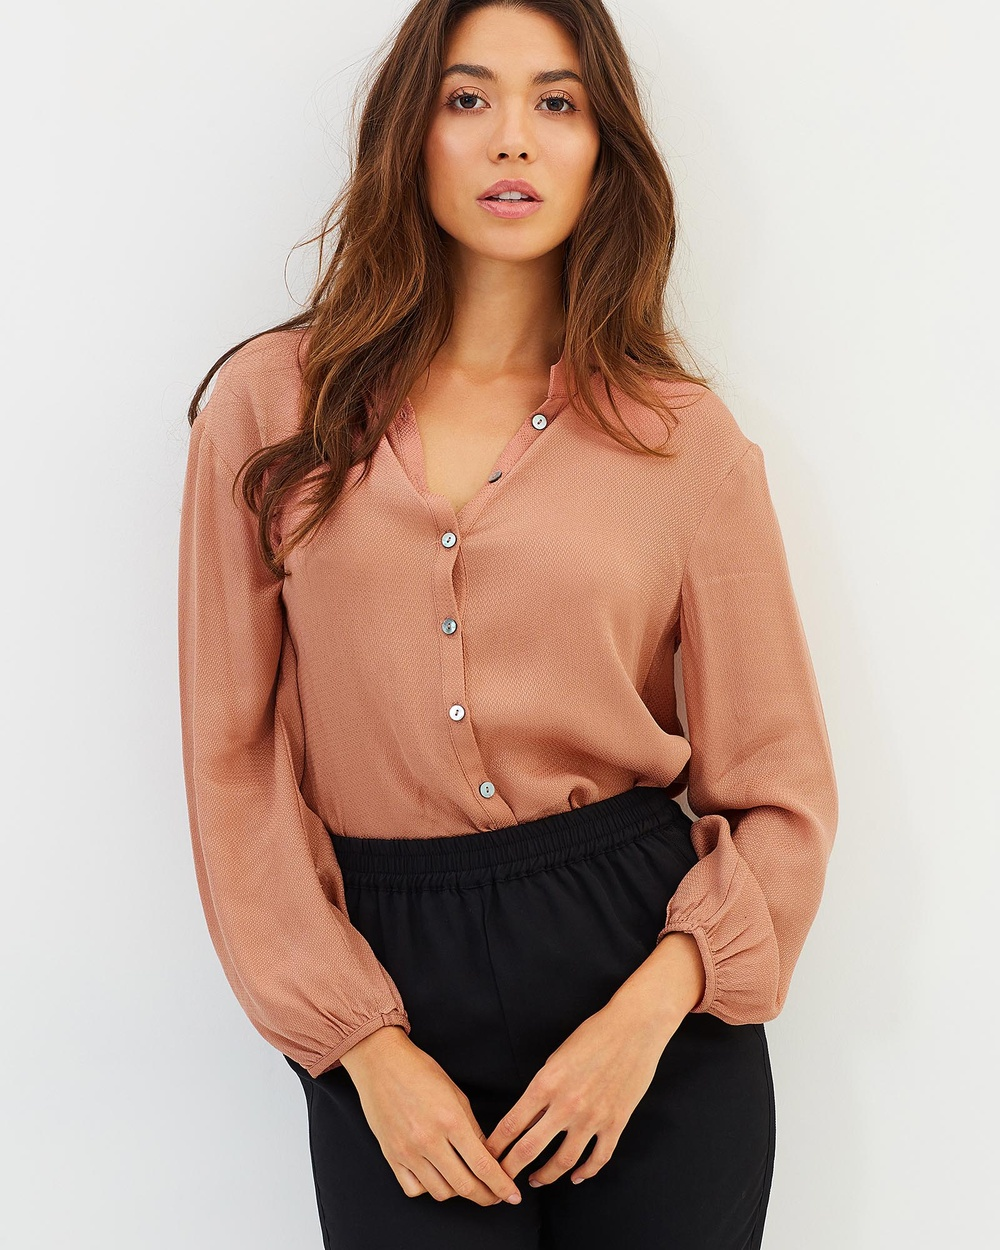 Photo of Privilege Privilege Ever After Swing Blouse Tops Soft Pink Ever After Swing Blouse - Striking the perfect balance between playful and professional, Privilege design flattering separates that boast fashion-forward flourishes that set them apart from the rest. Their Ever After Swing Blouse blends a traditional button-down with more whimsical details like blouson sleeves and relaxed, drapey silhouette. We love this blouse partially unbutton with a lace camisole pe